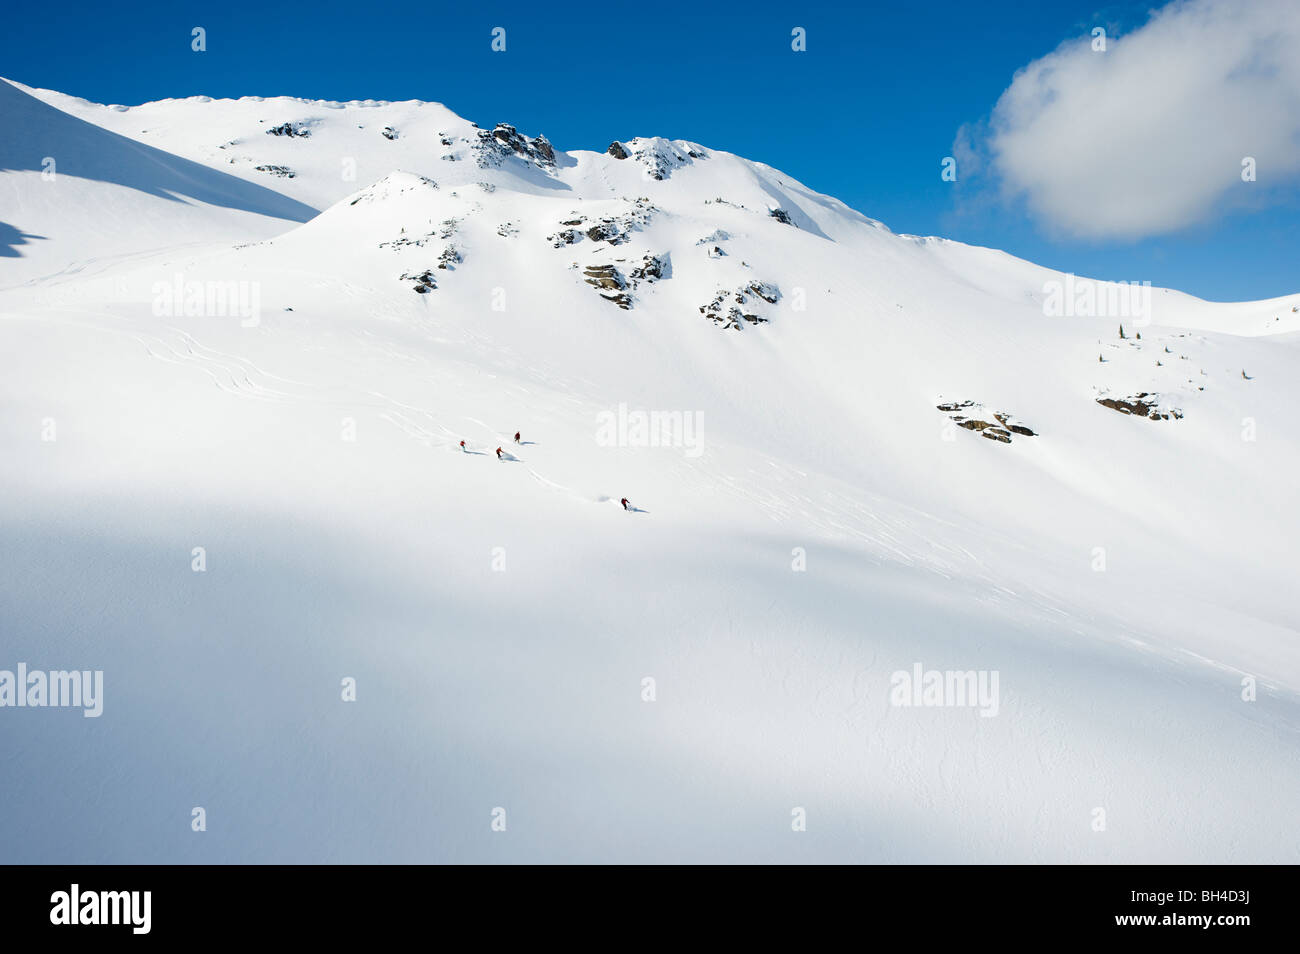 A group of skiers take a run down a large alpine bowl in the backcountry of the Selkirk Mountains, Canada. - Stock Image